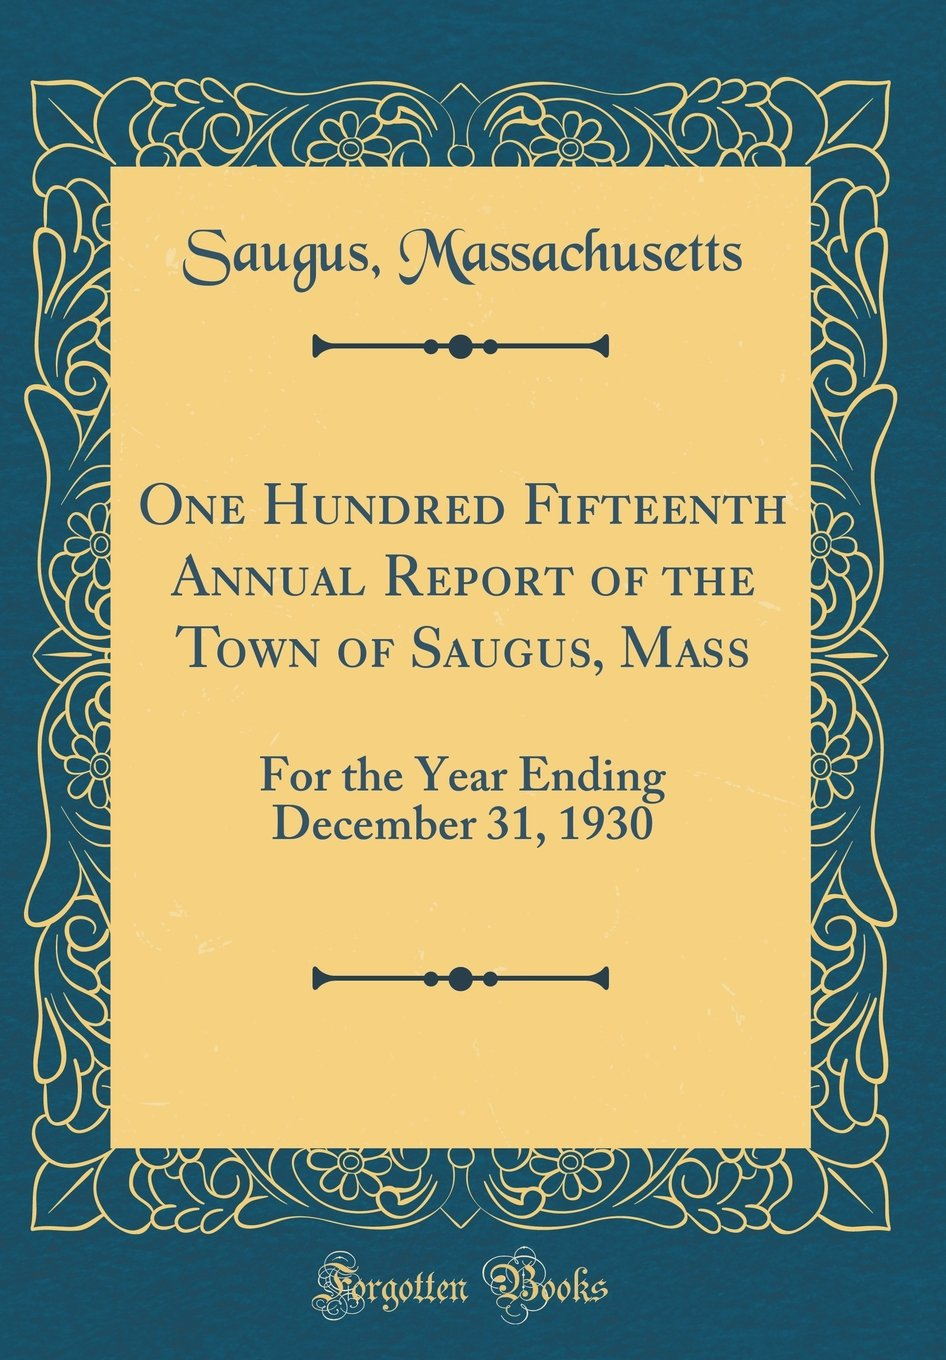 One Hundred Fifteenth Annual Report of the Town of Saugus, Mass: For the Year Ending December 31, 1930 (Classic Reprint) ebook